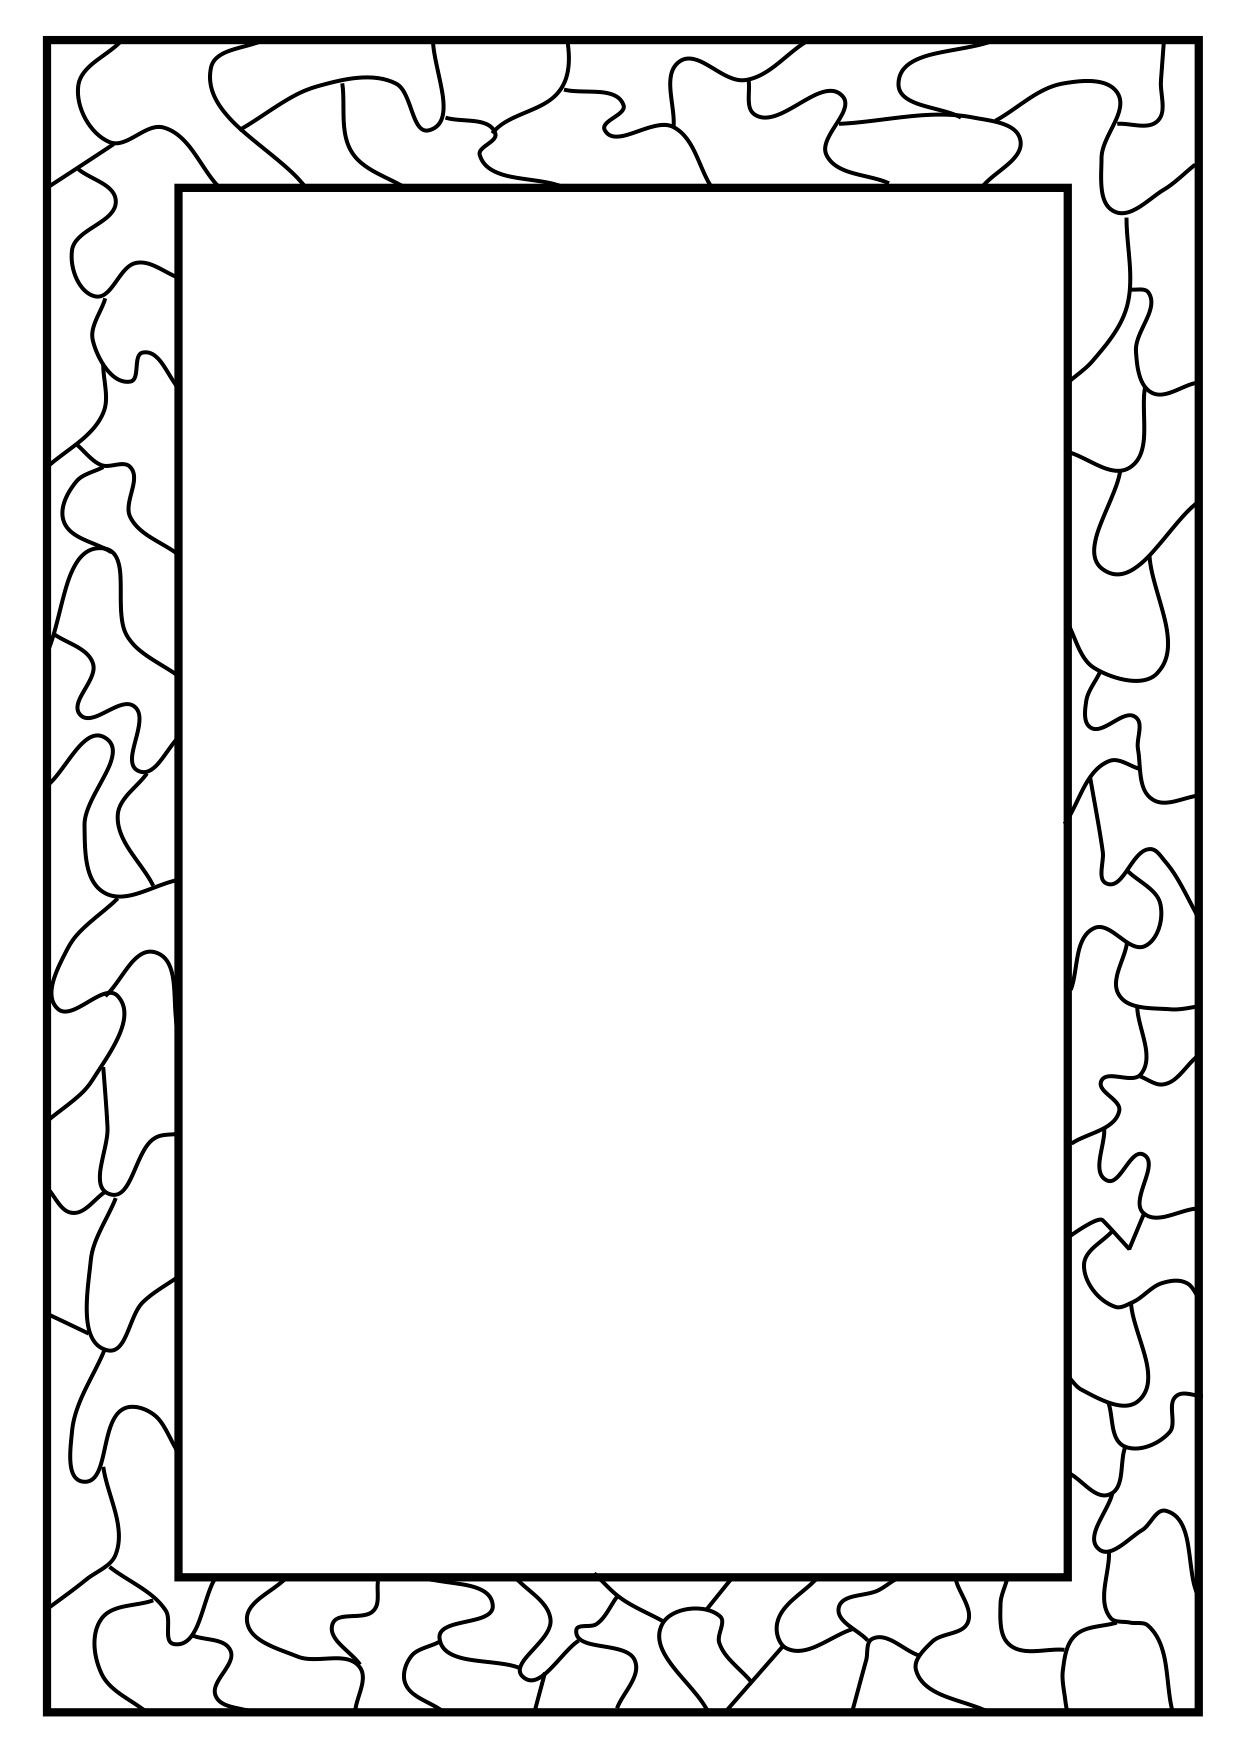 The range clipart frames freeuse download Full page borders - print out a wide range of free page ... freeuse download